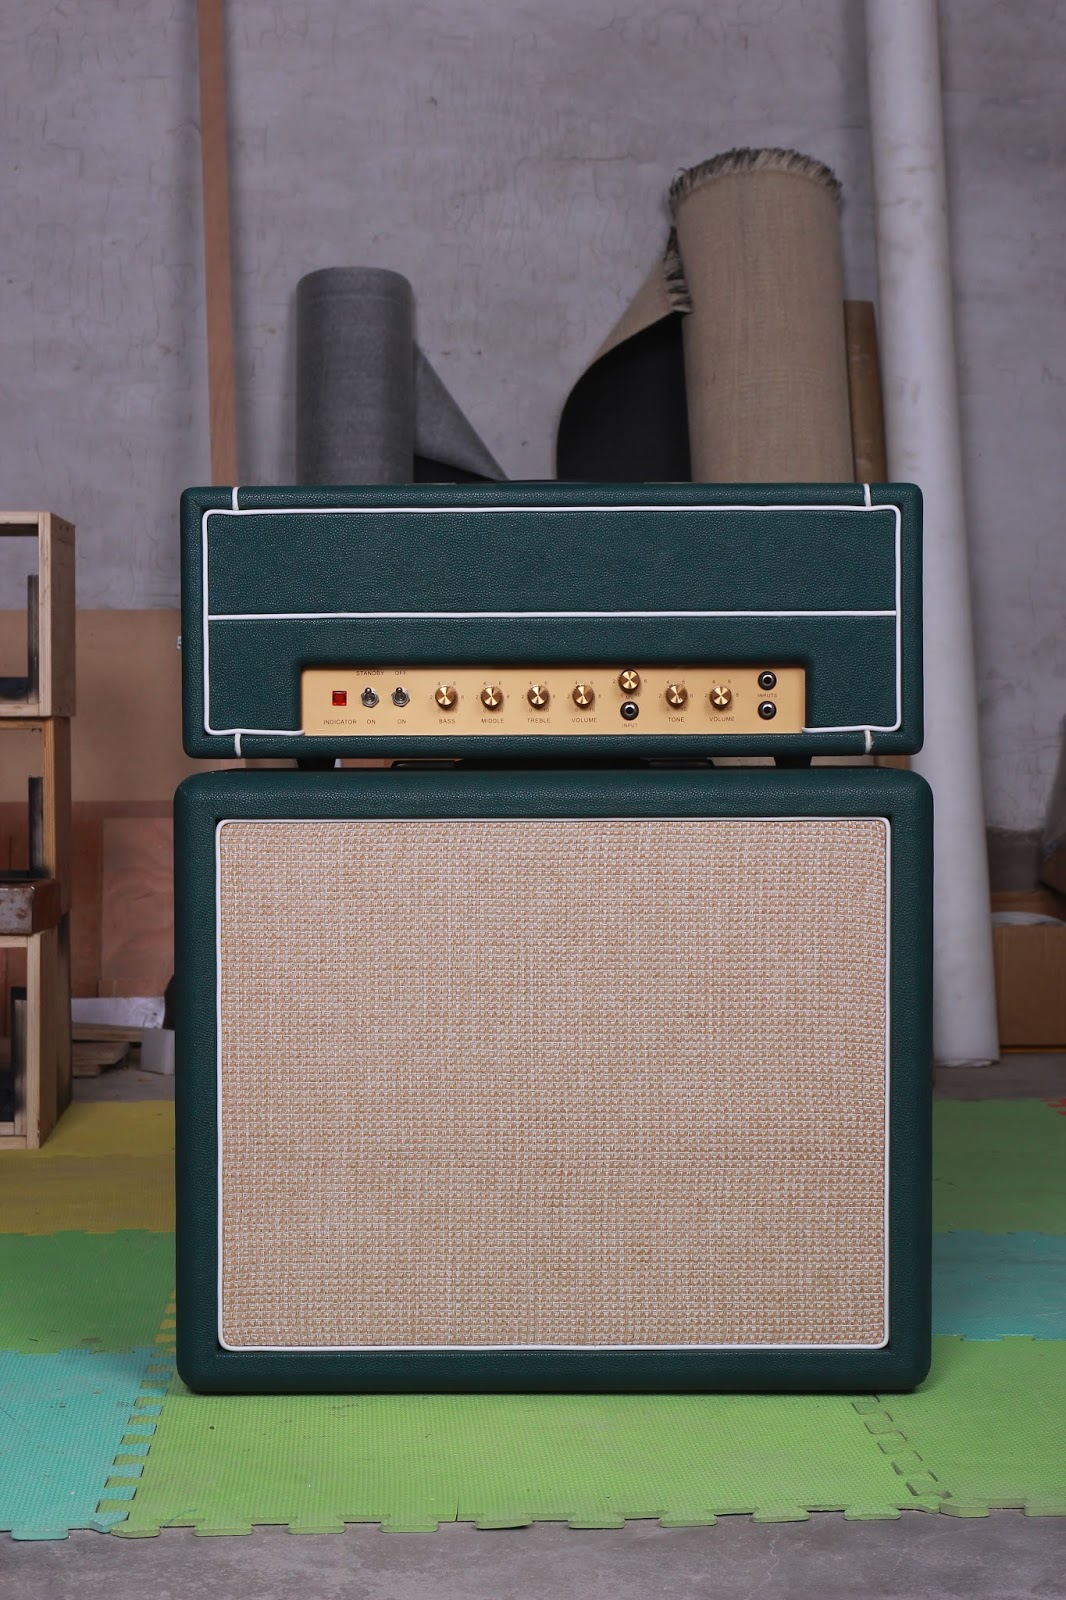 Genthry Guitar Blog: New Genthry 18 W TMB with PPIMV post